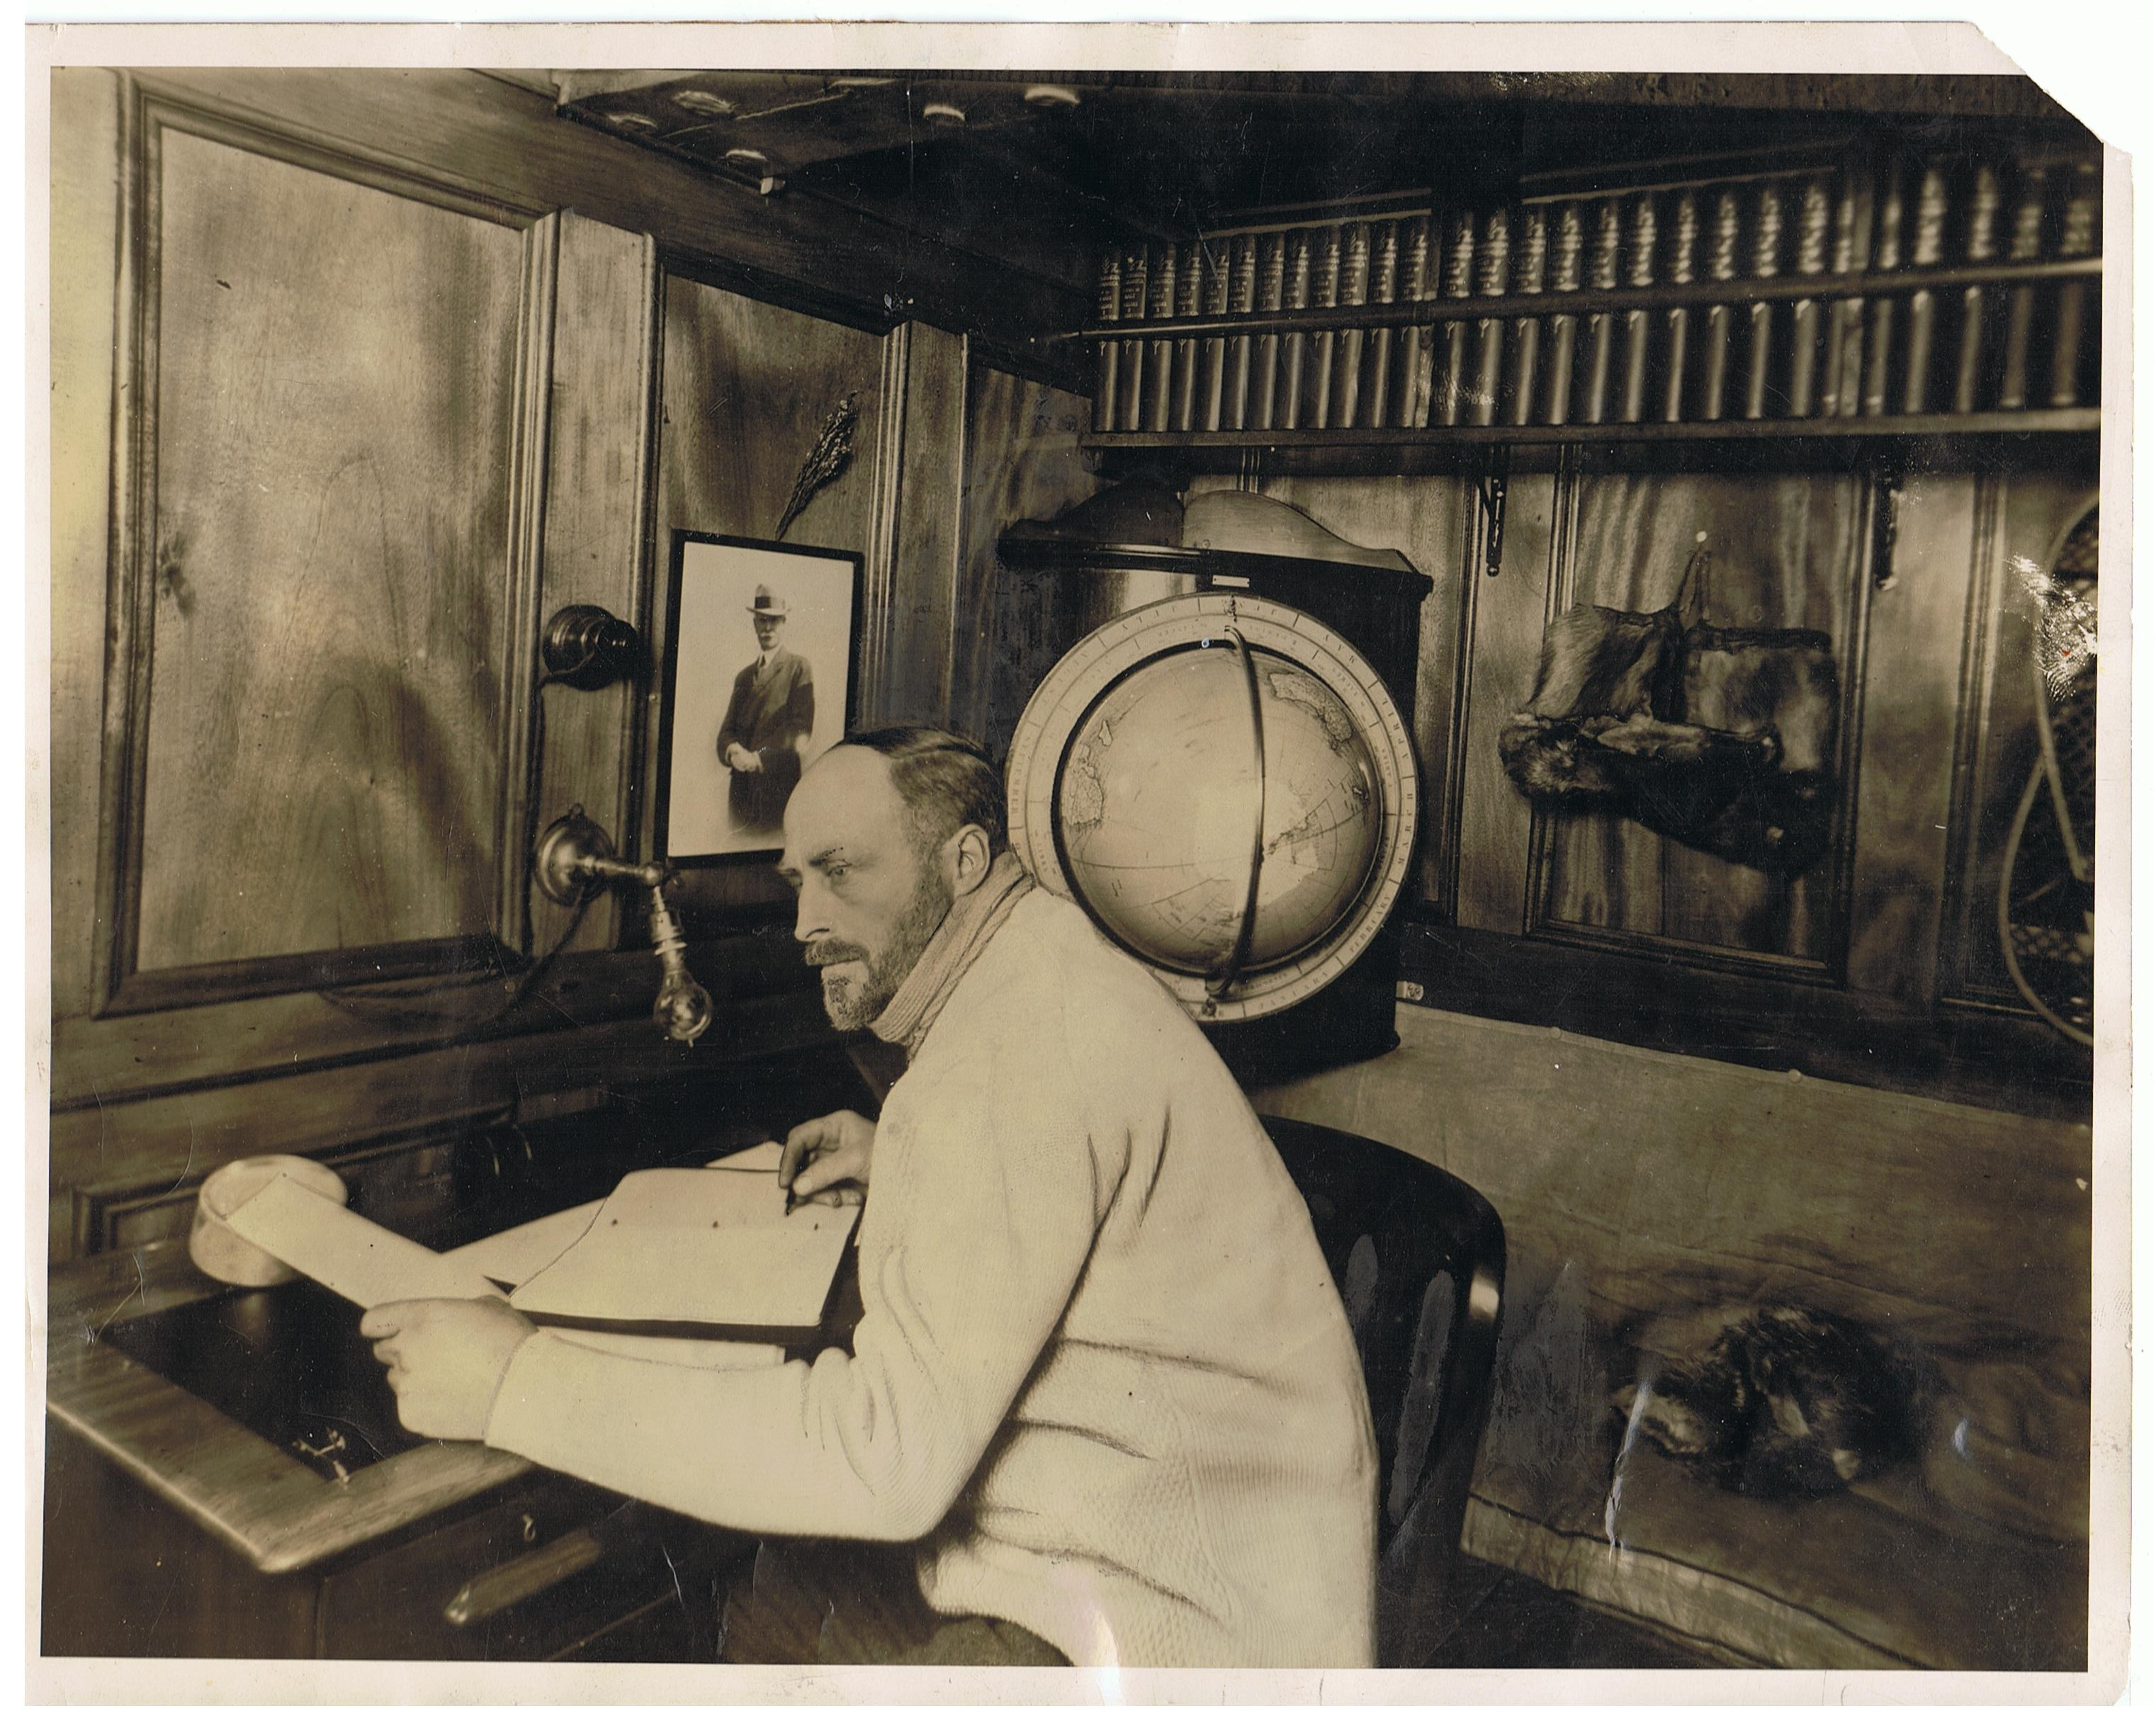 Image for Original photograph By Frank Hurley from 1930: Sir Douglas Mawson, Leader of the British Australian New Zealand Antarctic Research Expedition in His Study Aboard The Discovery.